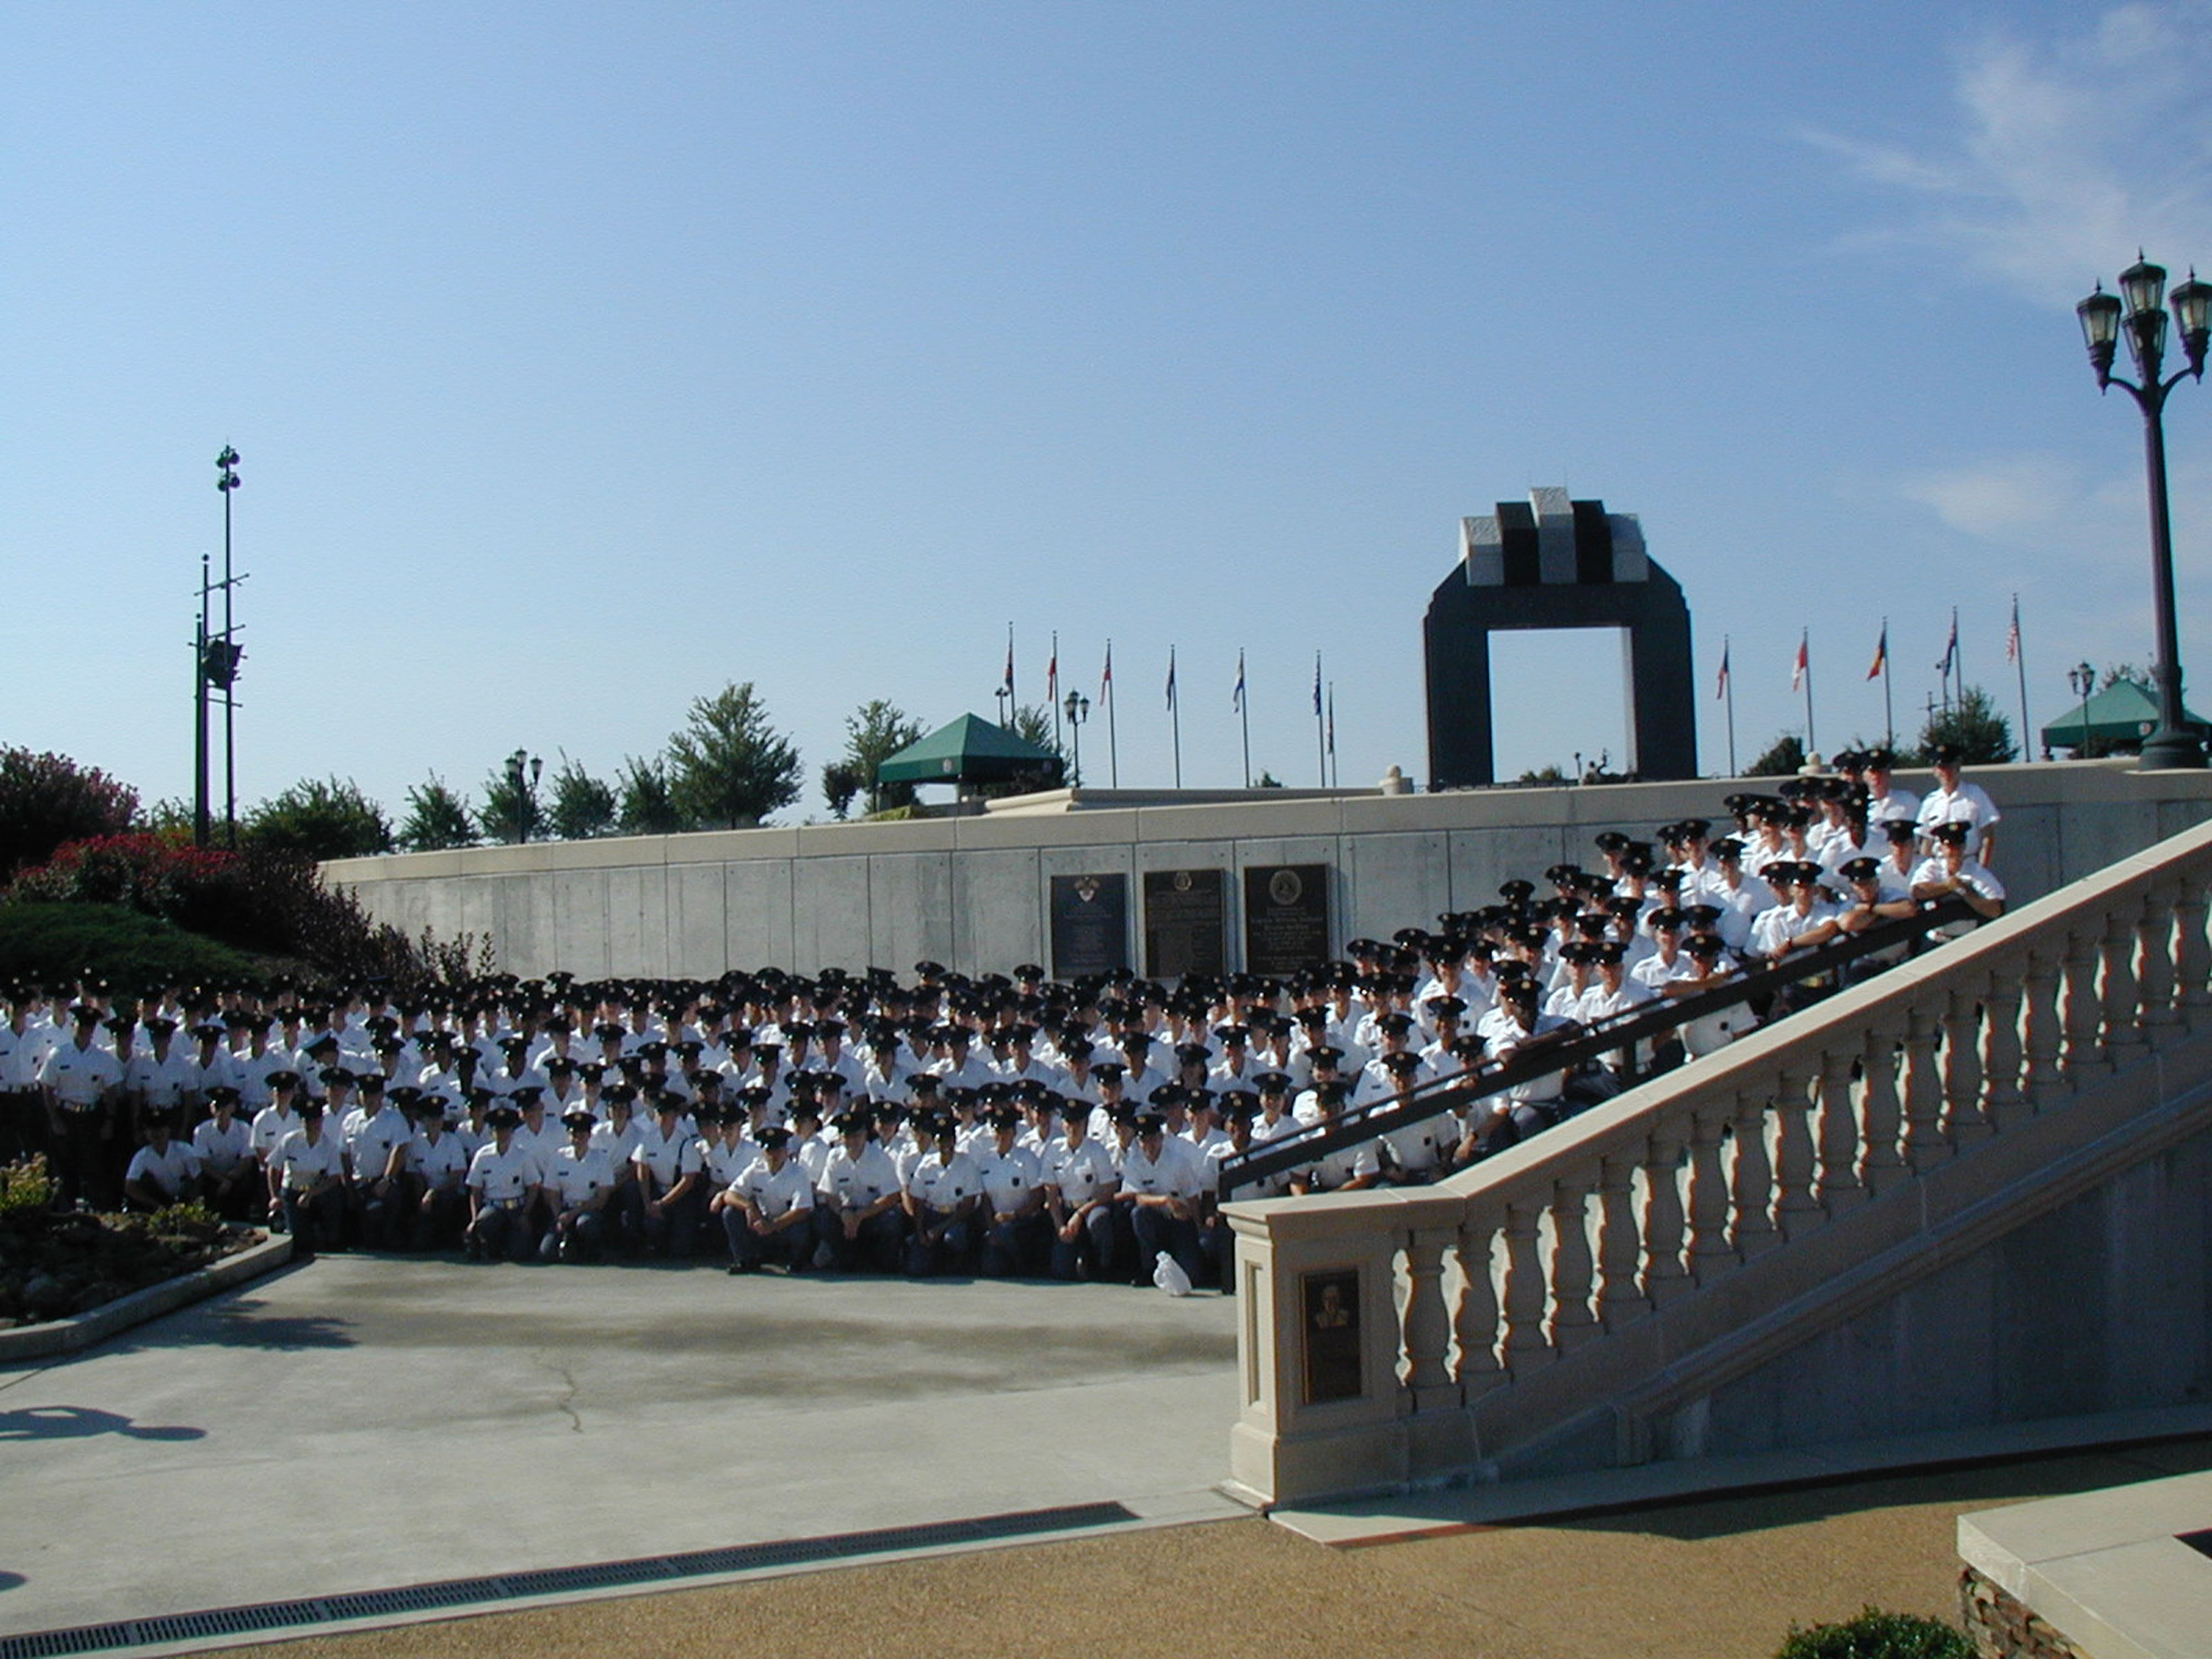 Virginia Tech Corps of Cadets freshman class trip to National D-Day Memorial in 2009